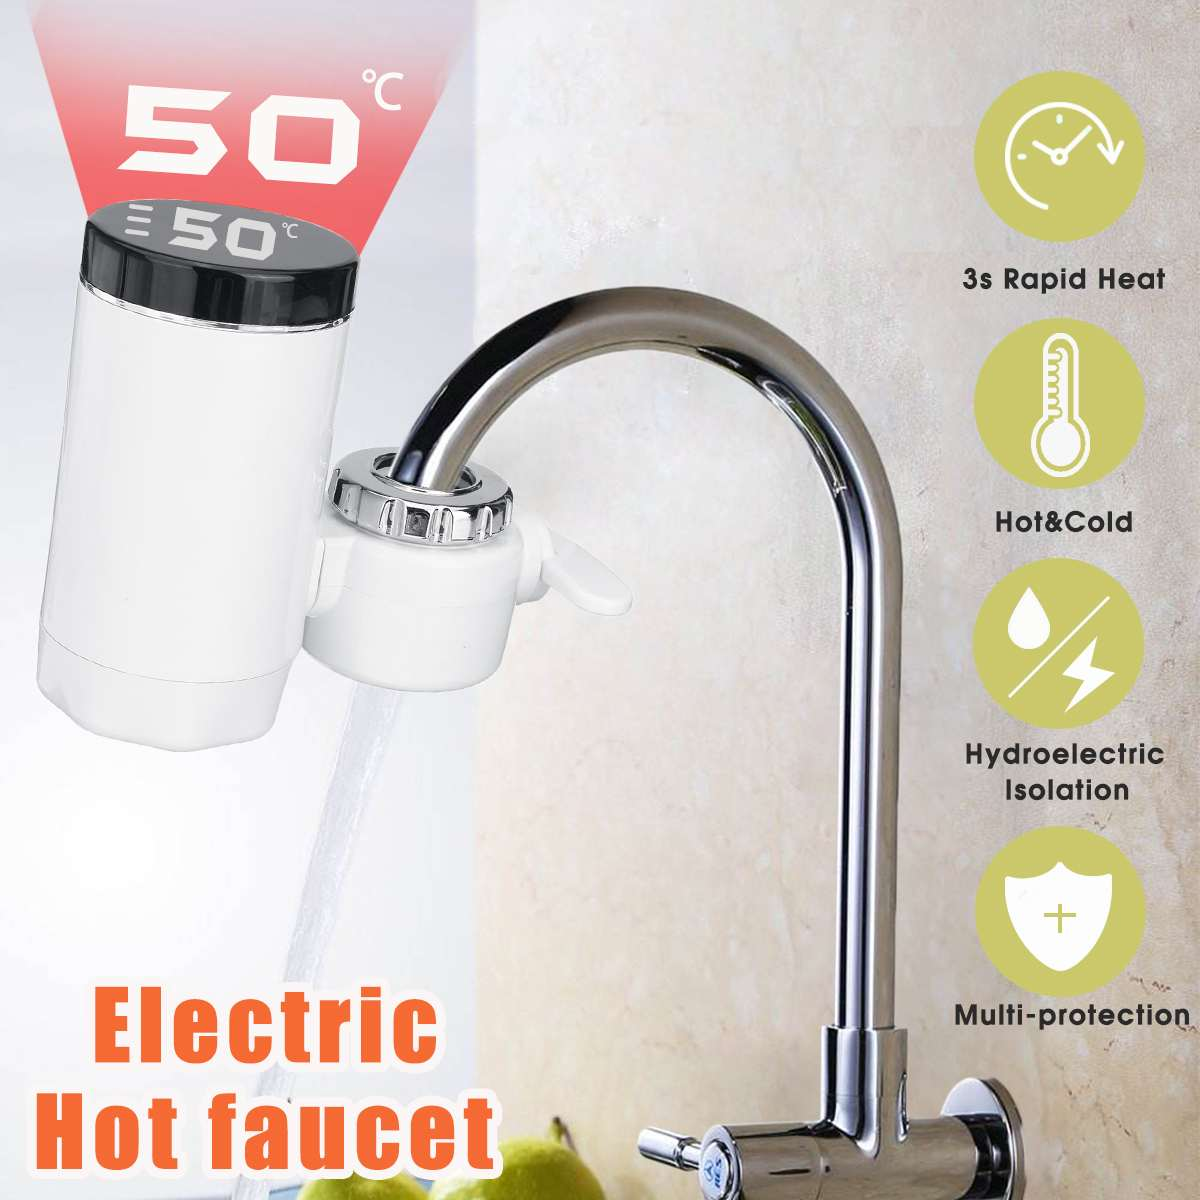 220V Electric Kitchen Water Heater Tap 3000W LCD Display Instant Hot Water Faucet Cold Heating Faucet Water Heater